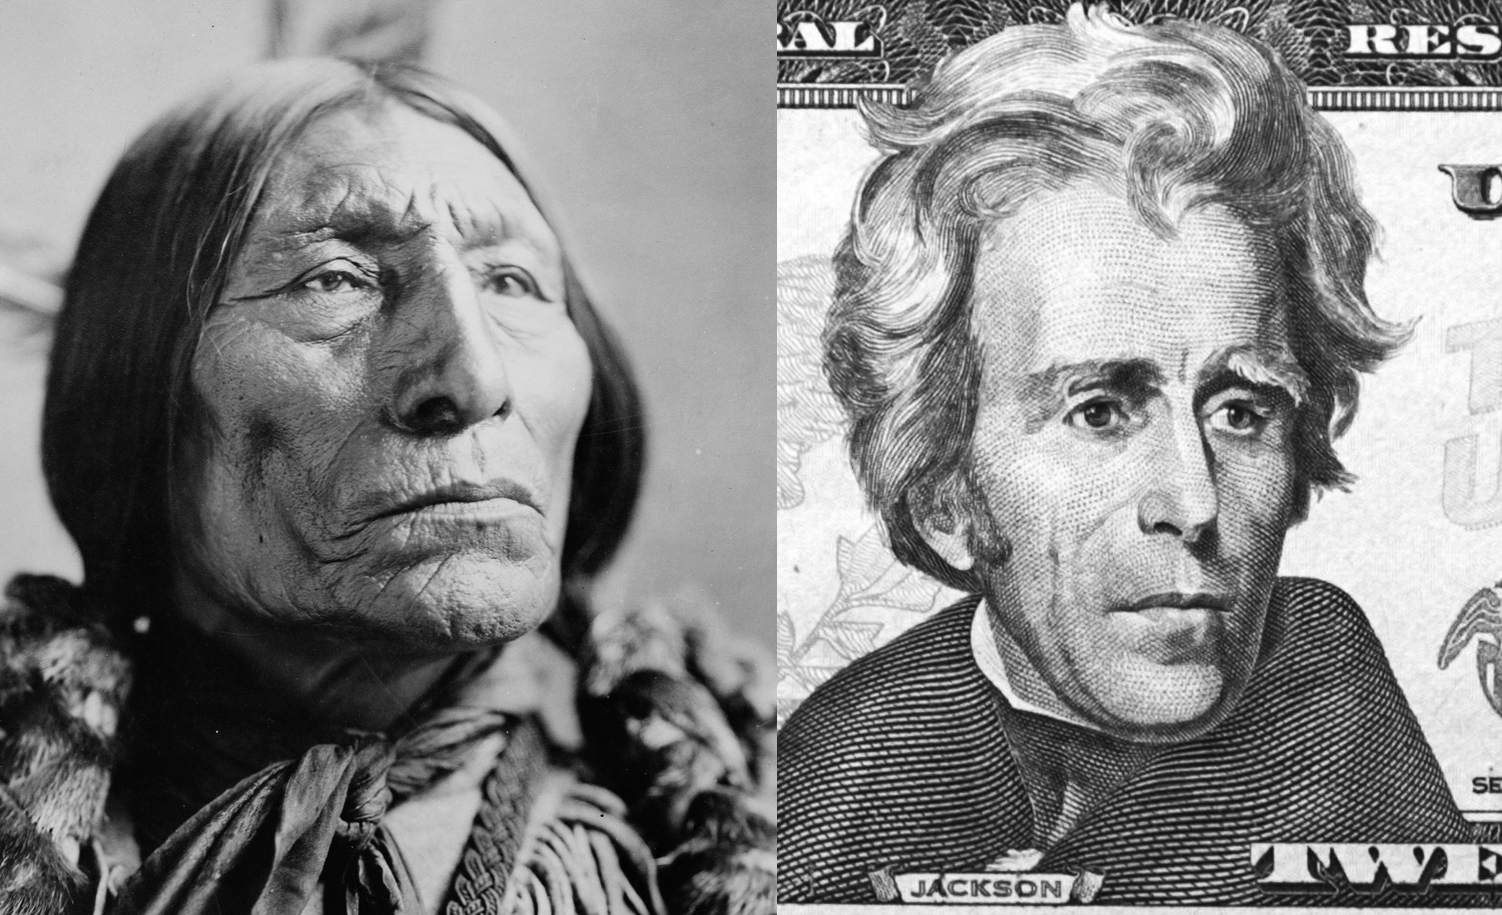 chief should replace jackson